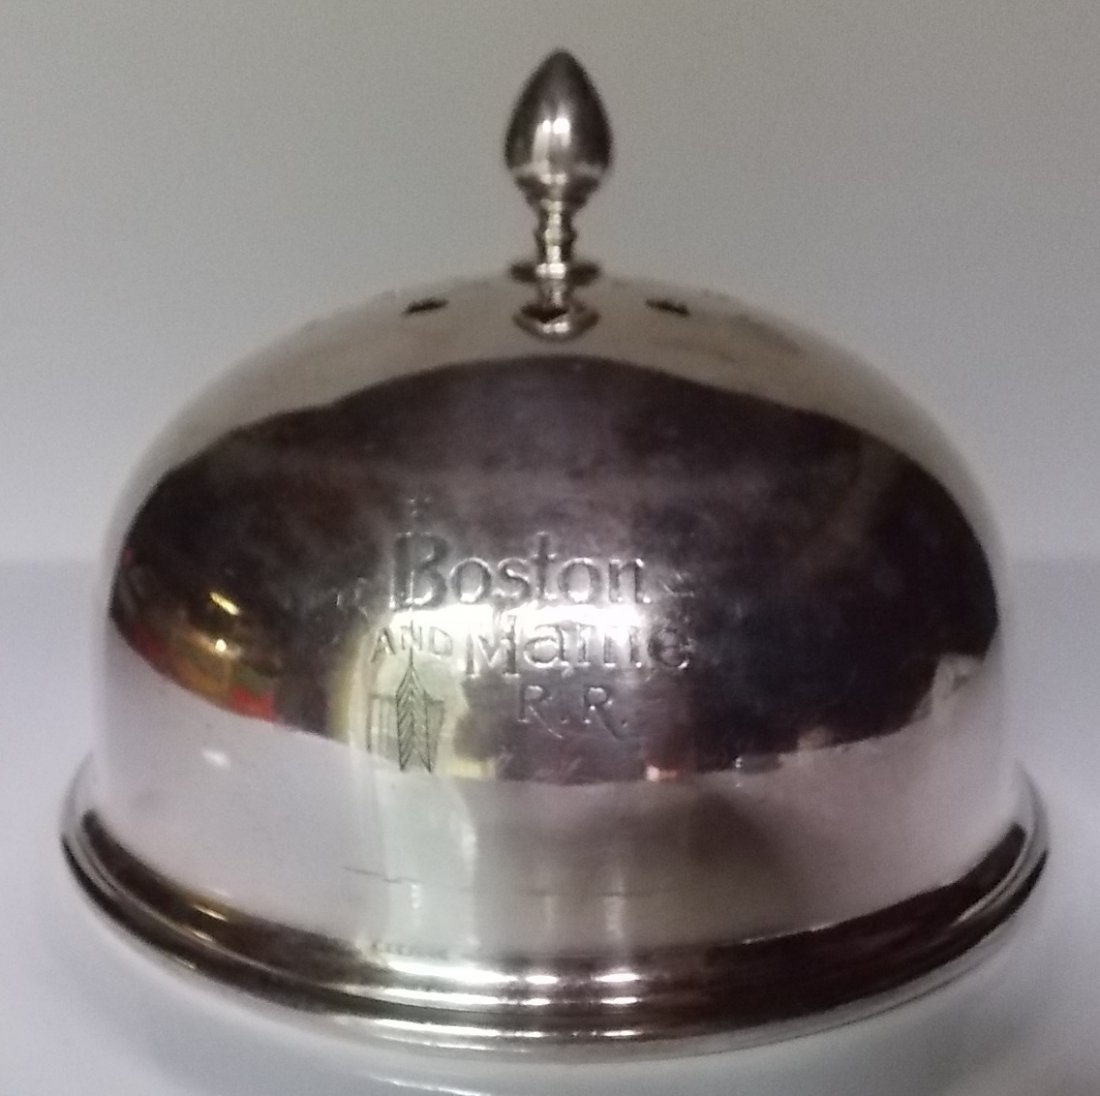 Boston & Maine Railroad Silver Food Cover